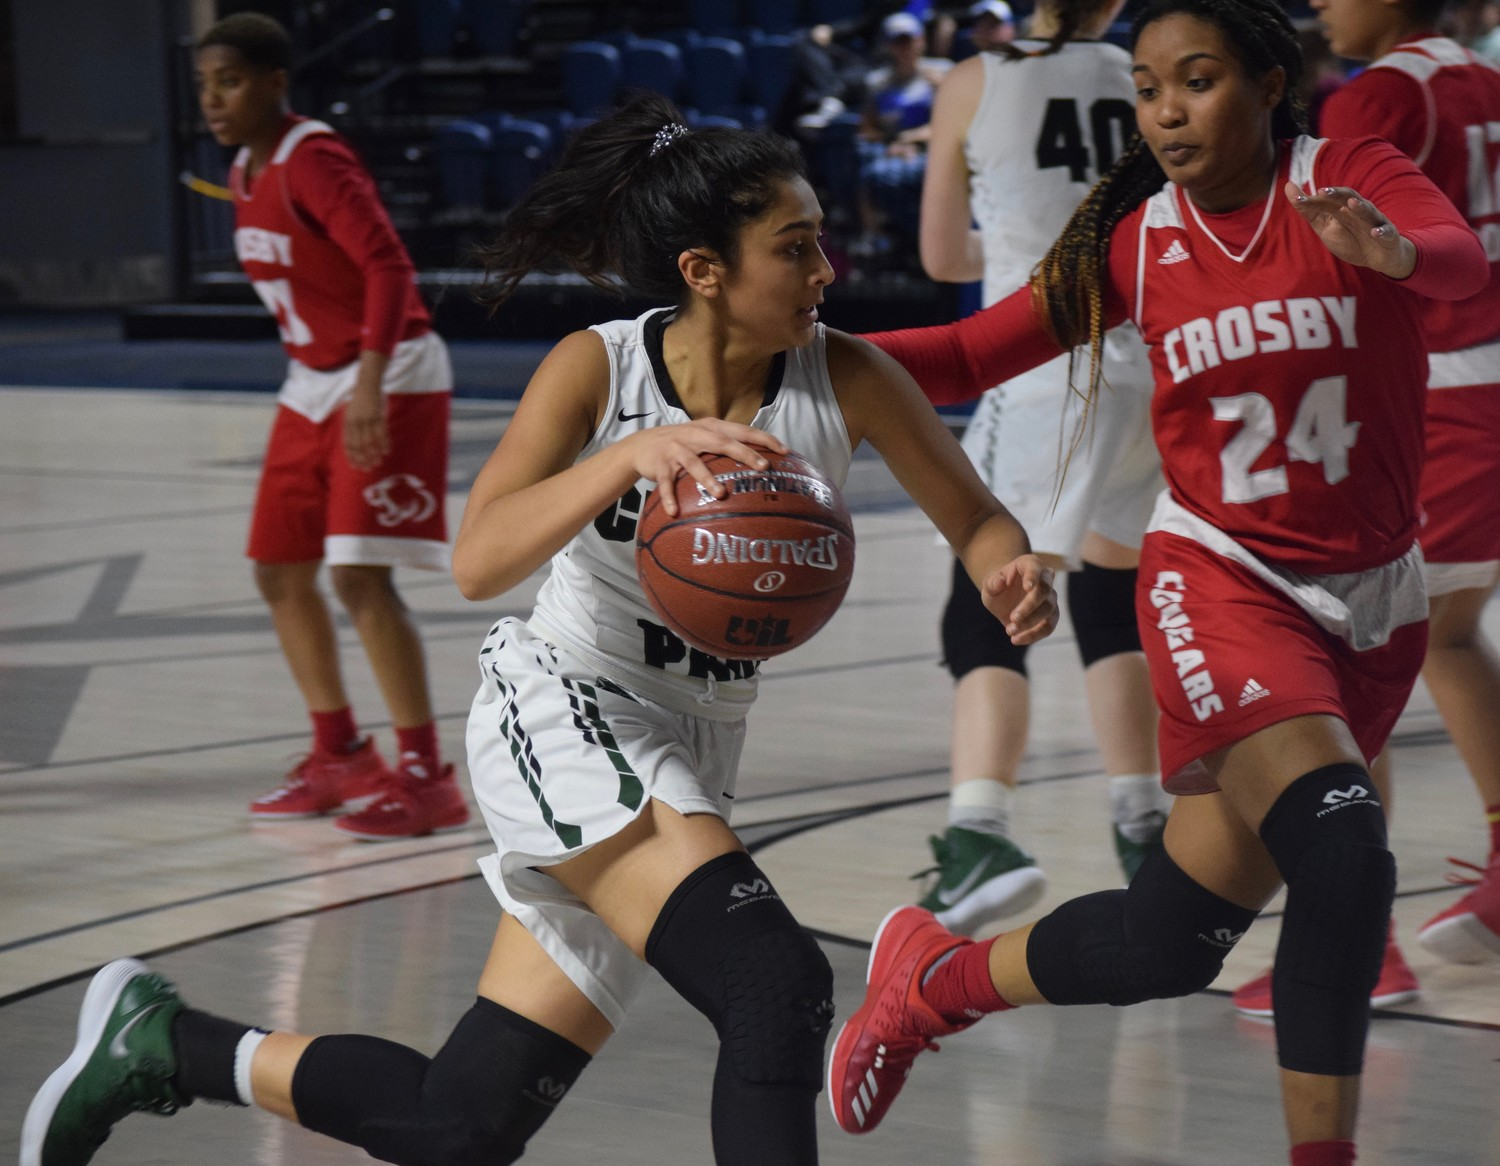 Pujita Shukla and Cedar Park lost to Crosby 53-47 at the Delmar Fieldhouse in the regional semifinals.